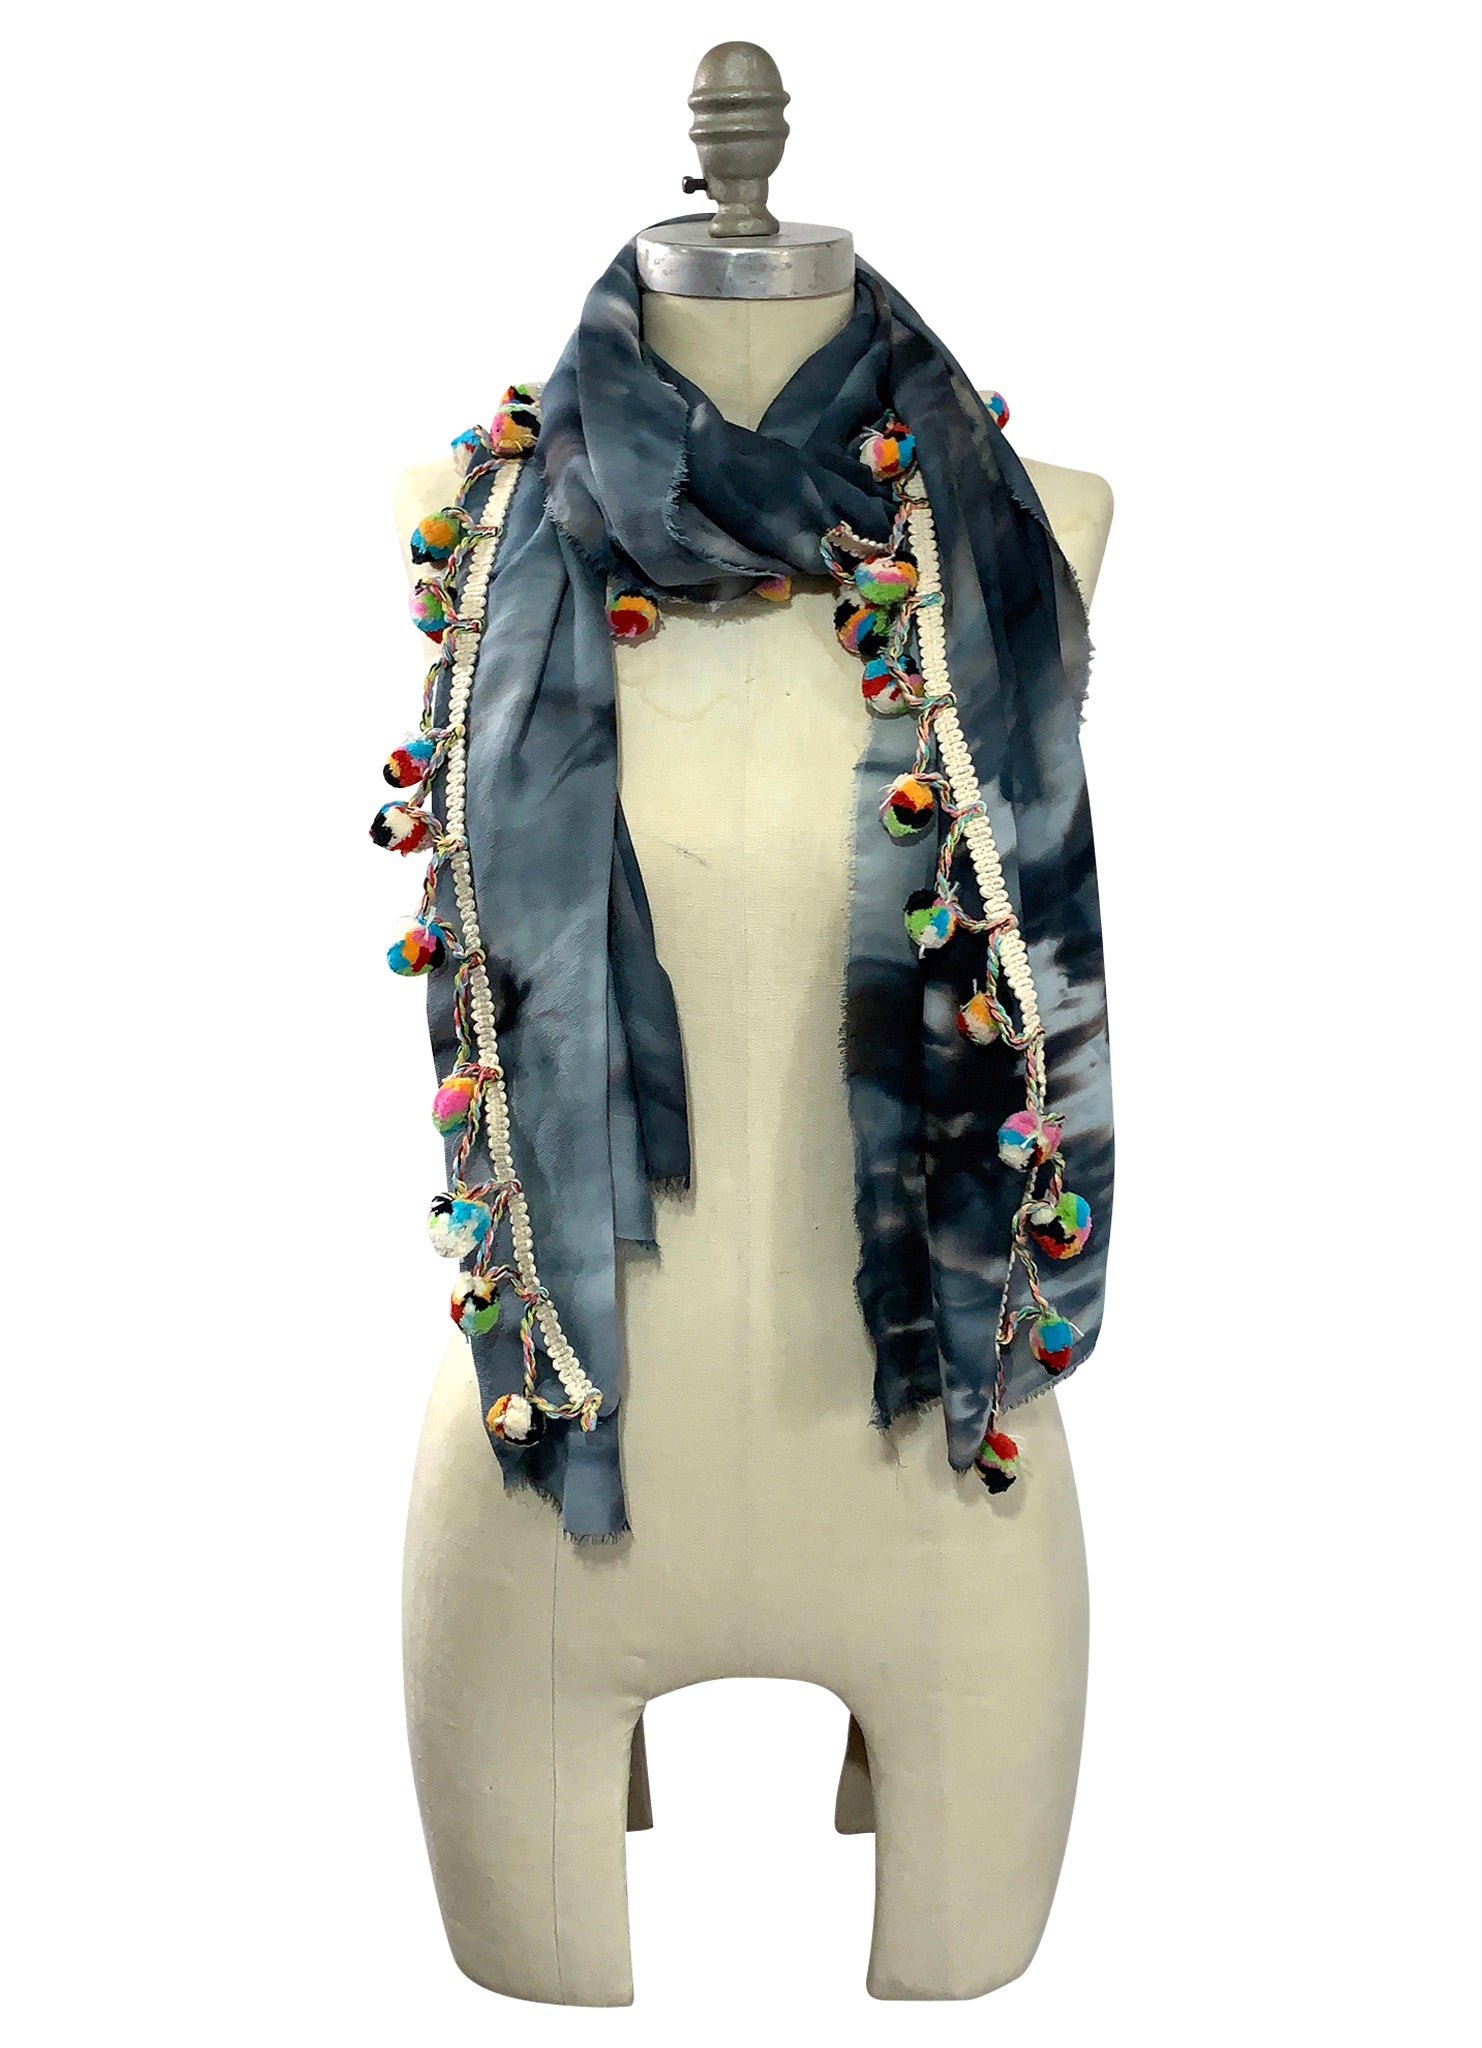 Black and White Scarf with Pom Poms - Scarves - Dyetology